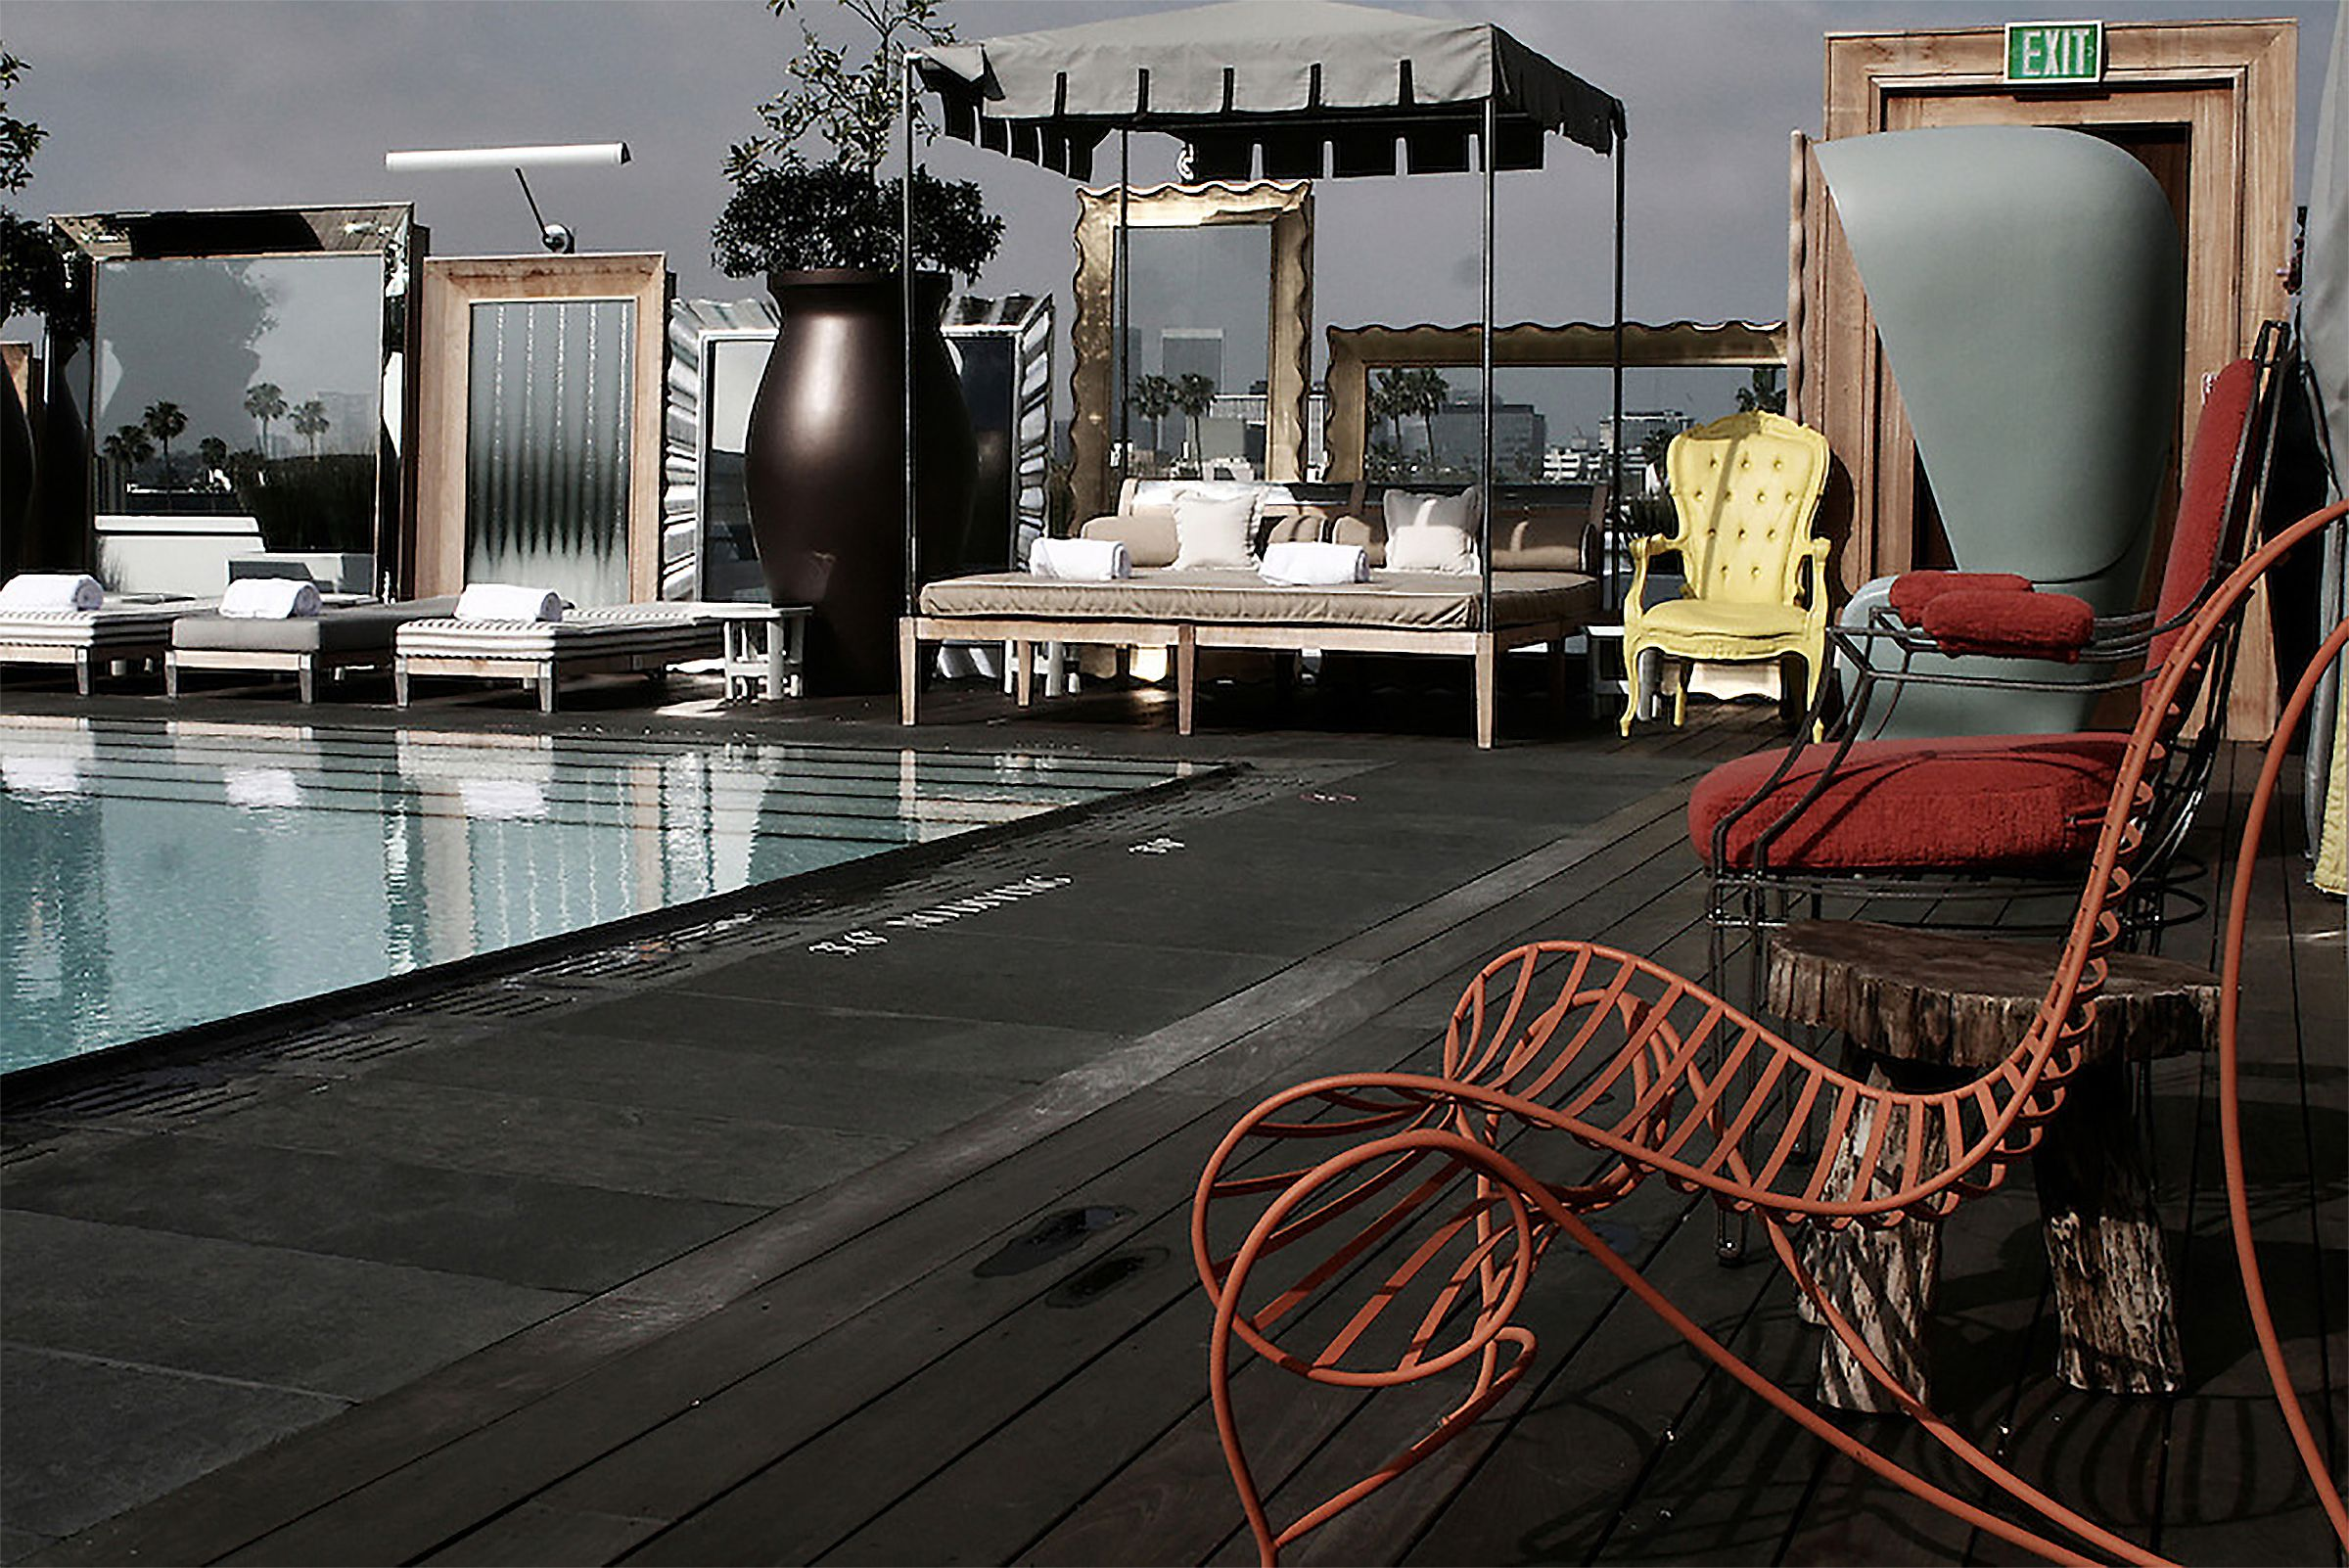 SLS Hotel (Beverly Hills) by Philippe Starck